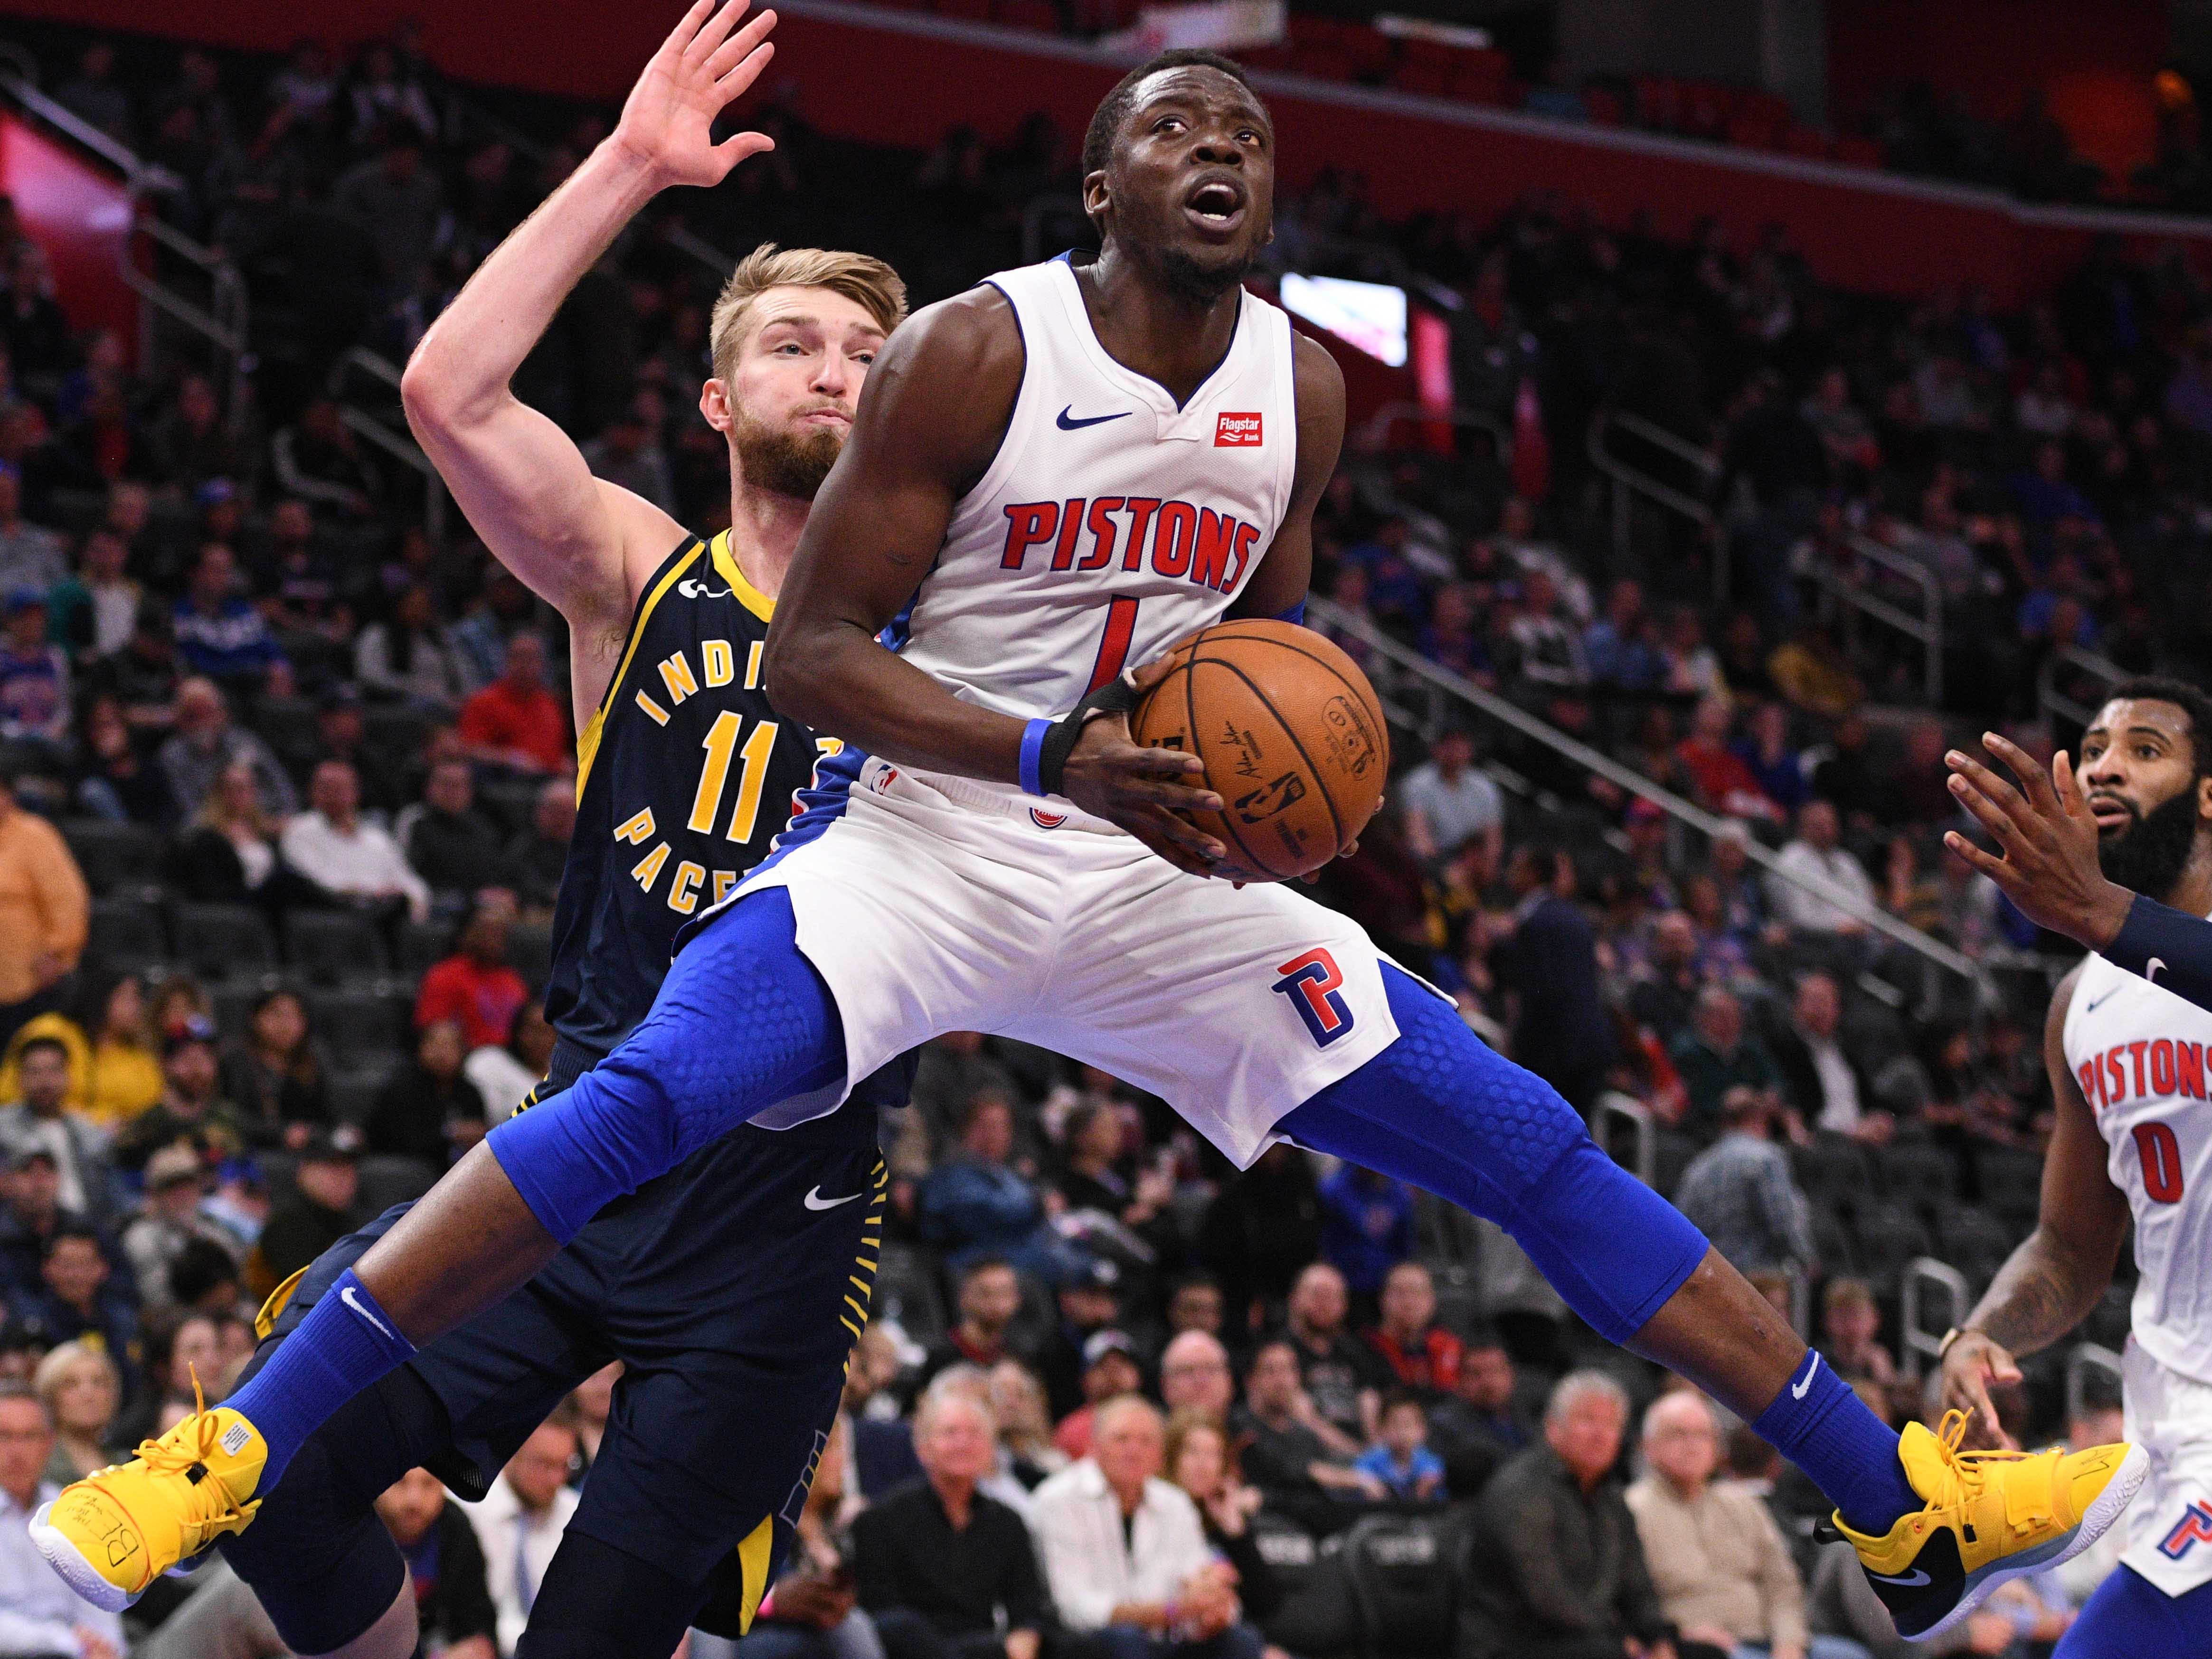 April 3: Detroit Pistons guard Reggie Jackson (1) drives to the basket against Indiana Pacers forward Domantas Sabonis (11) during the fourth quarter at Little Caesars Arena.